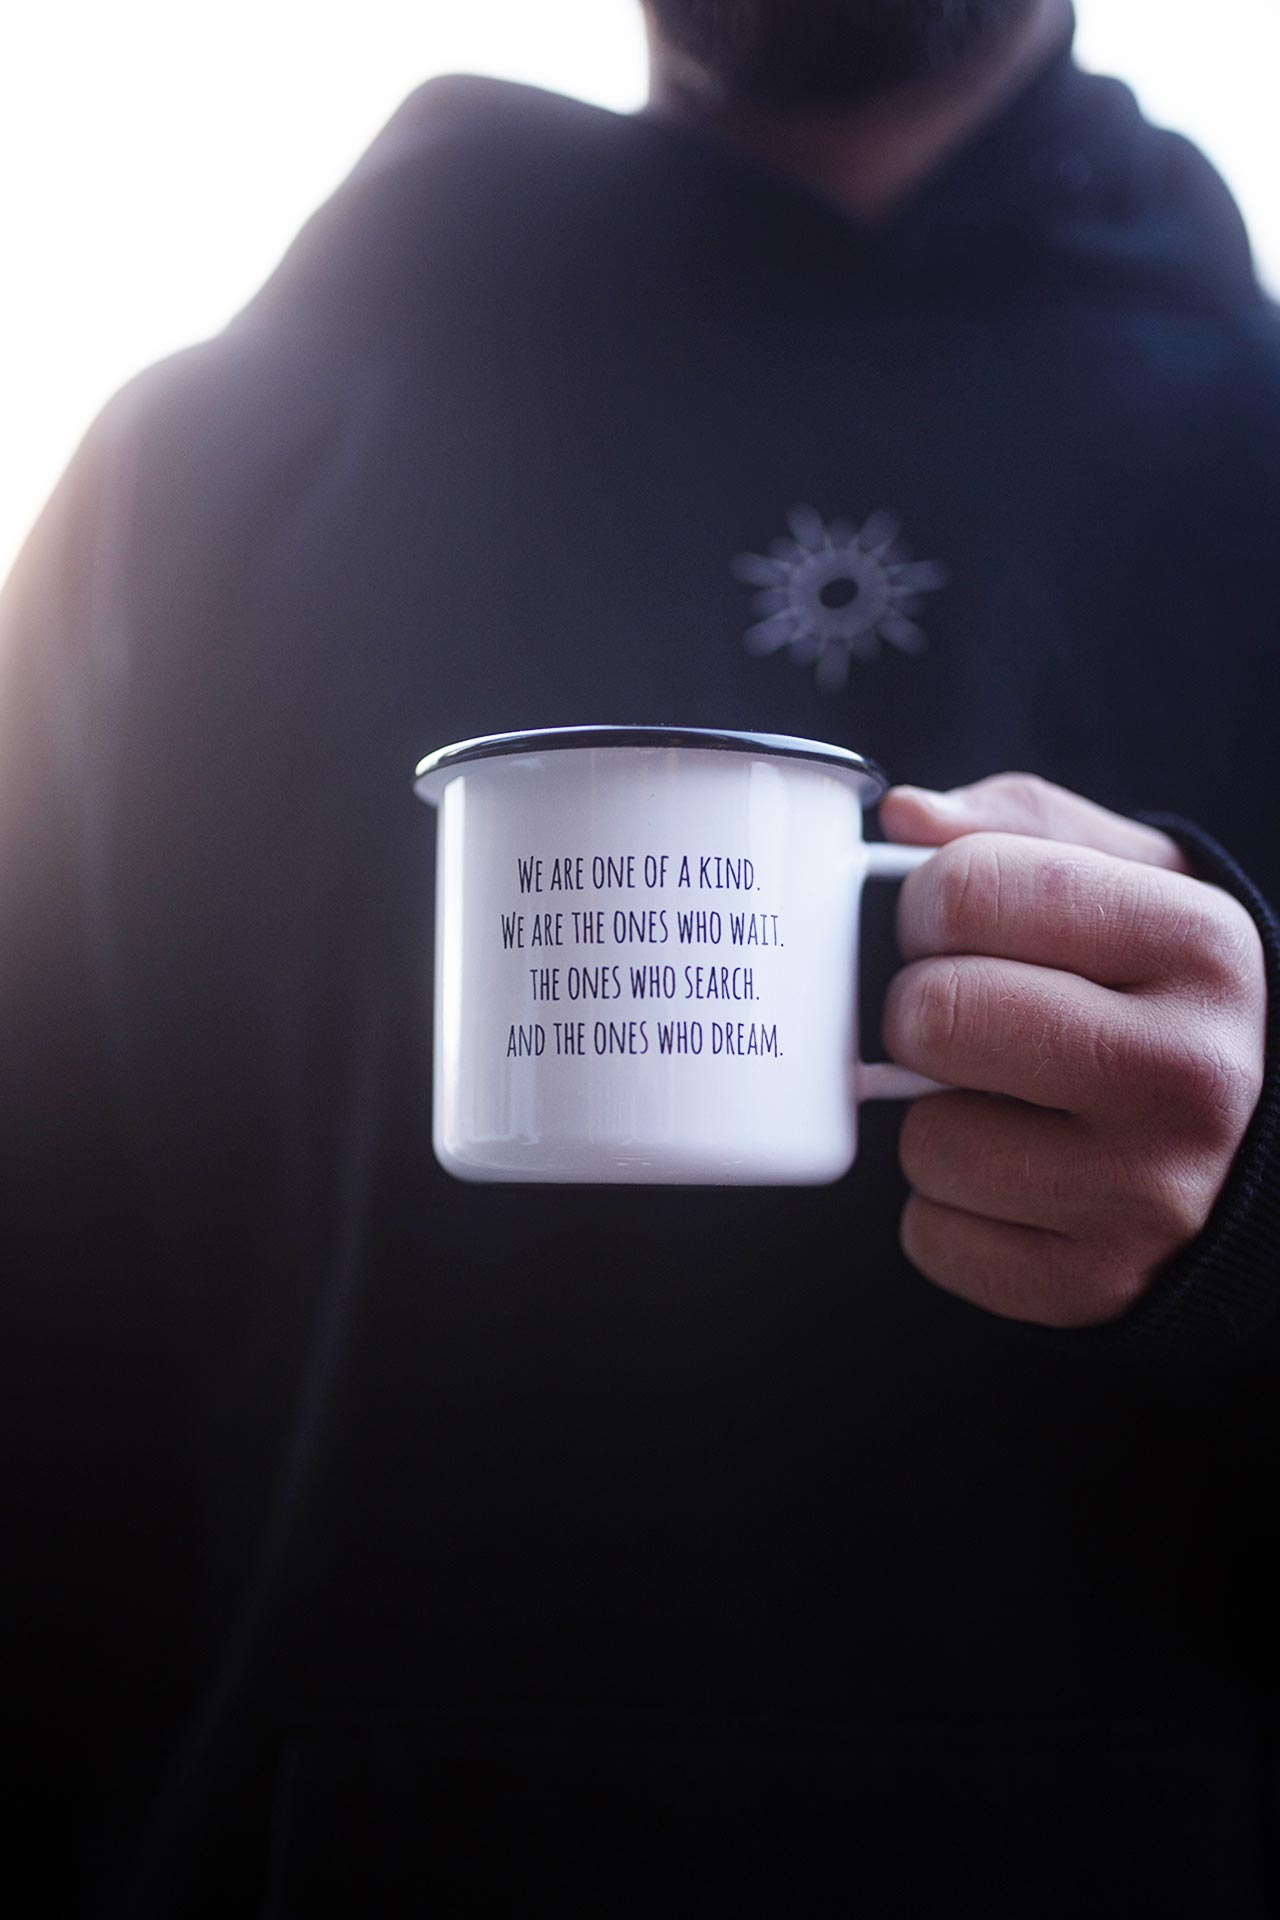 Emaille Tasse mit Spruch - We are one of a kind, we are the ones who wait, the ones who search and the ones who dream - in Hand gehalten.